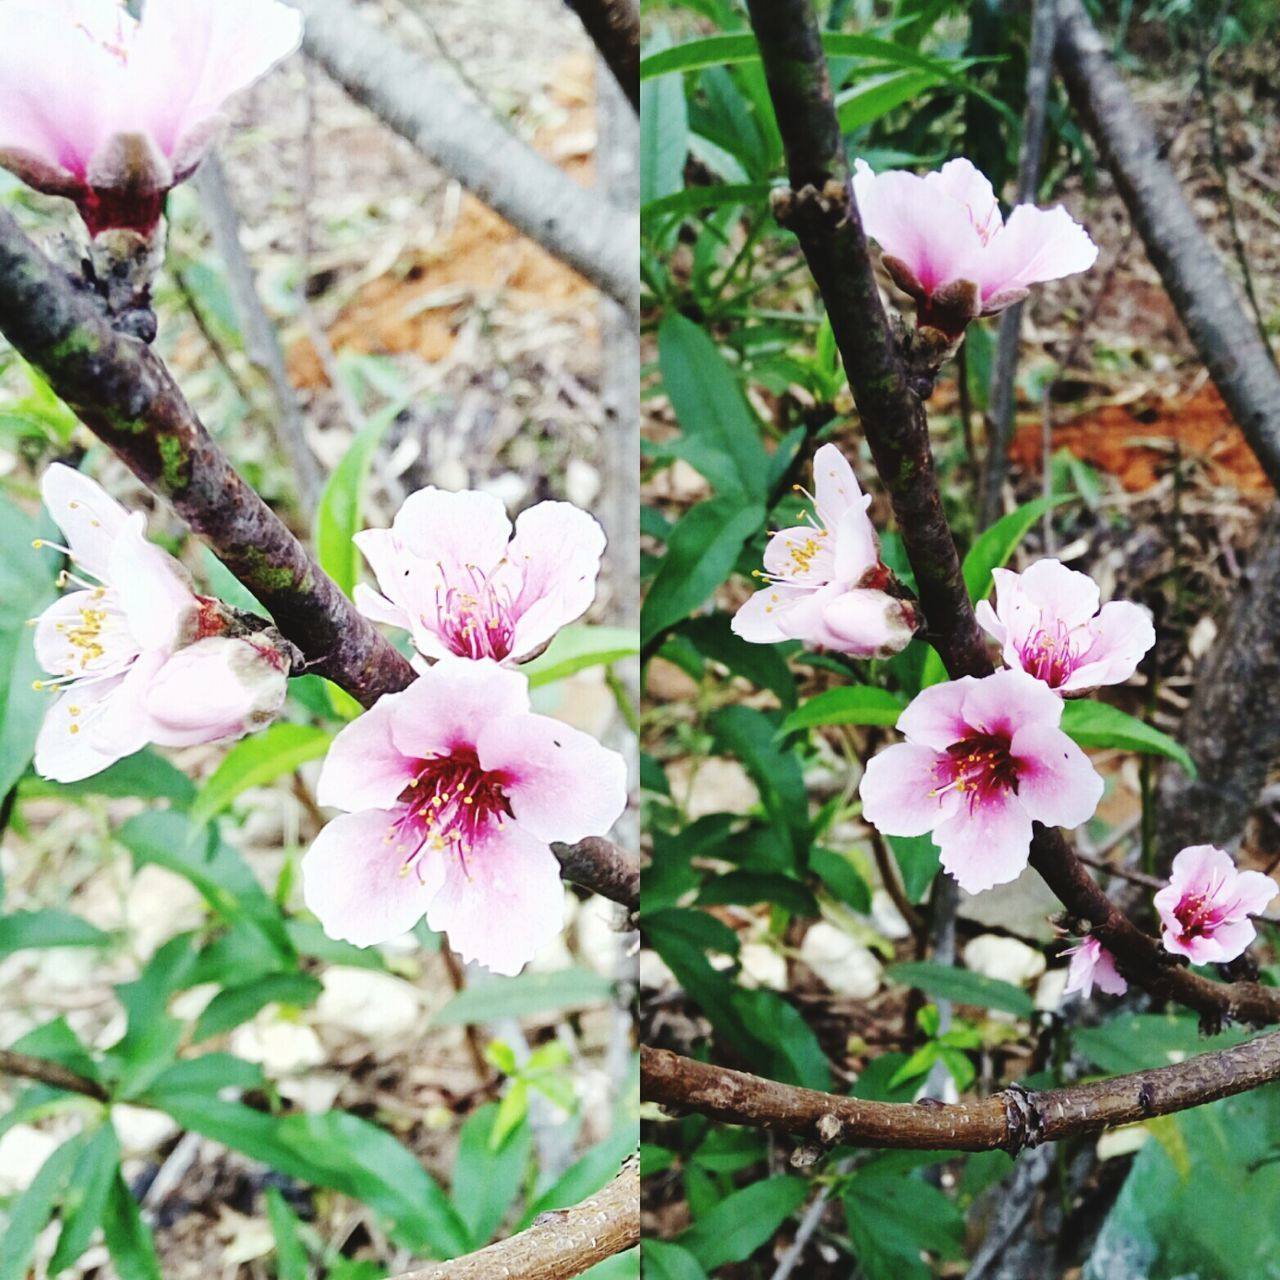 flower, fragility, growth, freshness, beauty in nature, blossom, nature, petal, pink color, flower head, springtime, day, tree, close-up, no people, apple blossom, botany, branch, twig, stamen, outdoors, high angle view, blooming